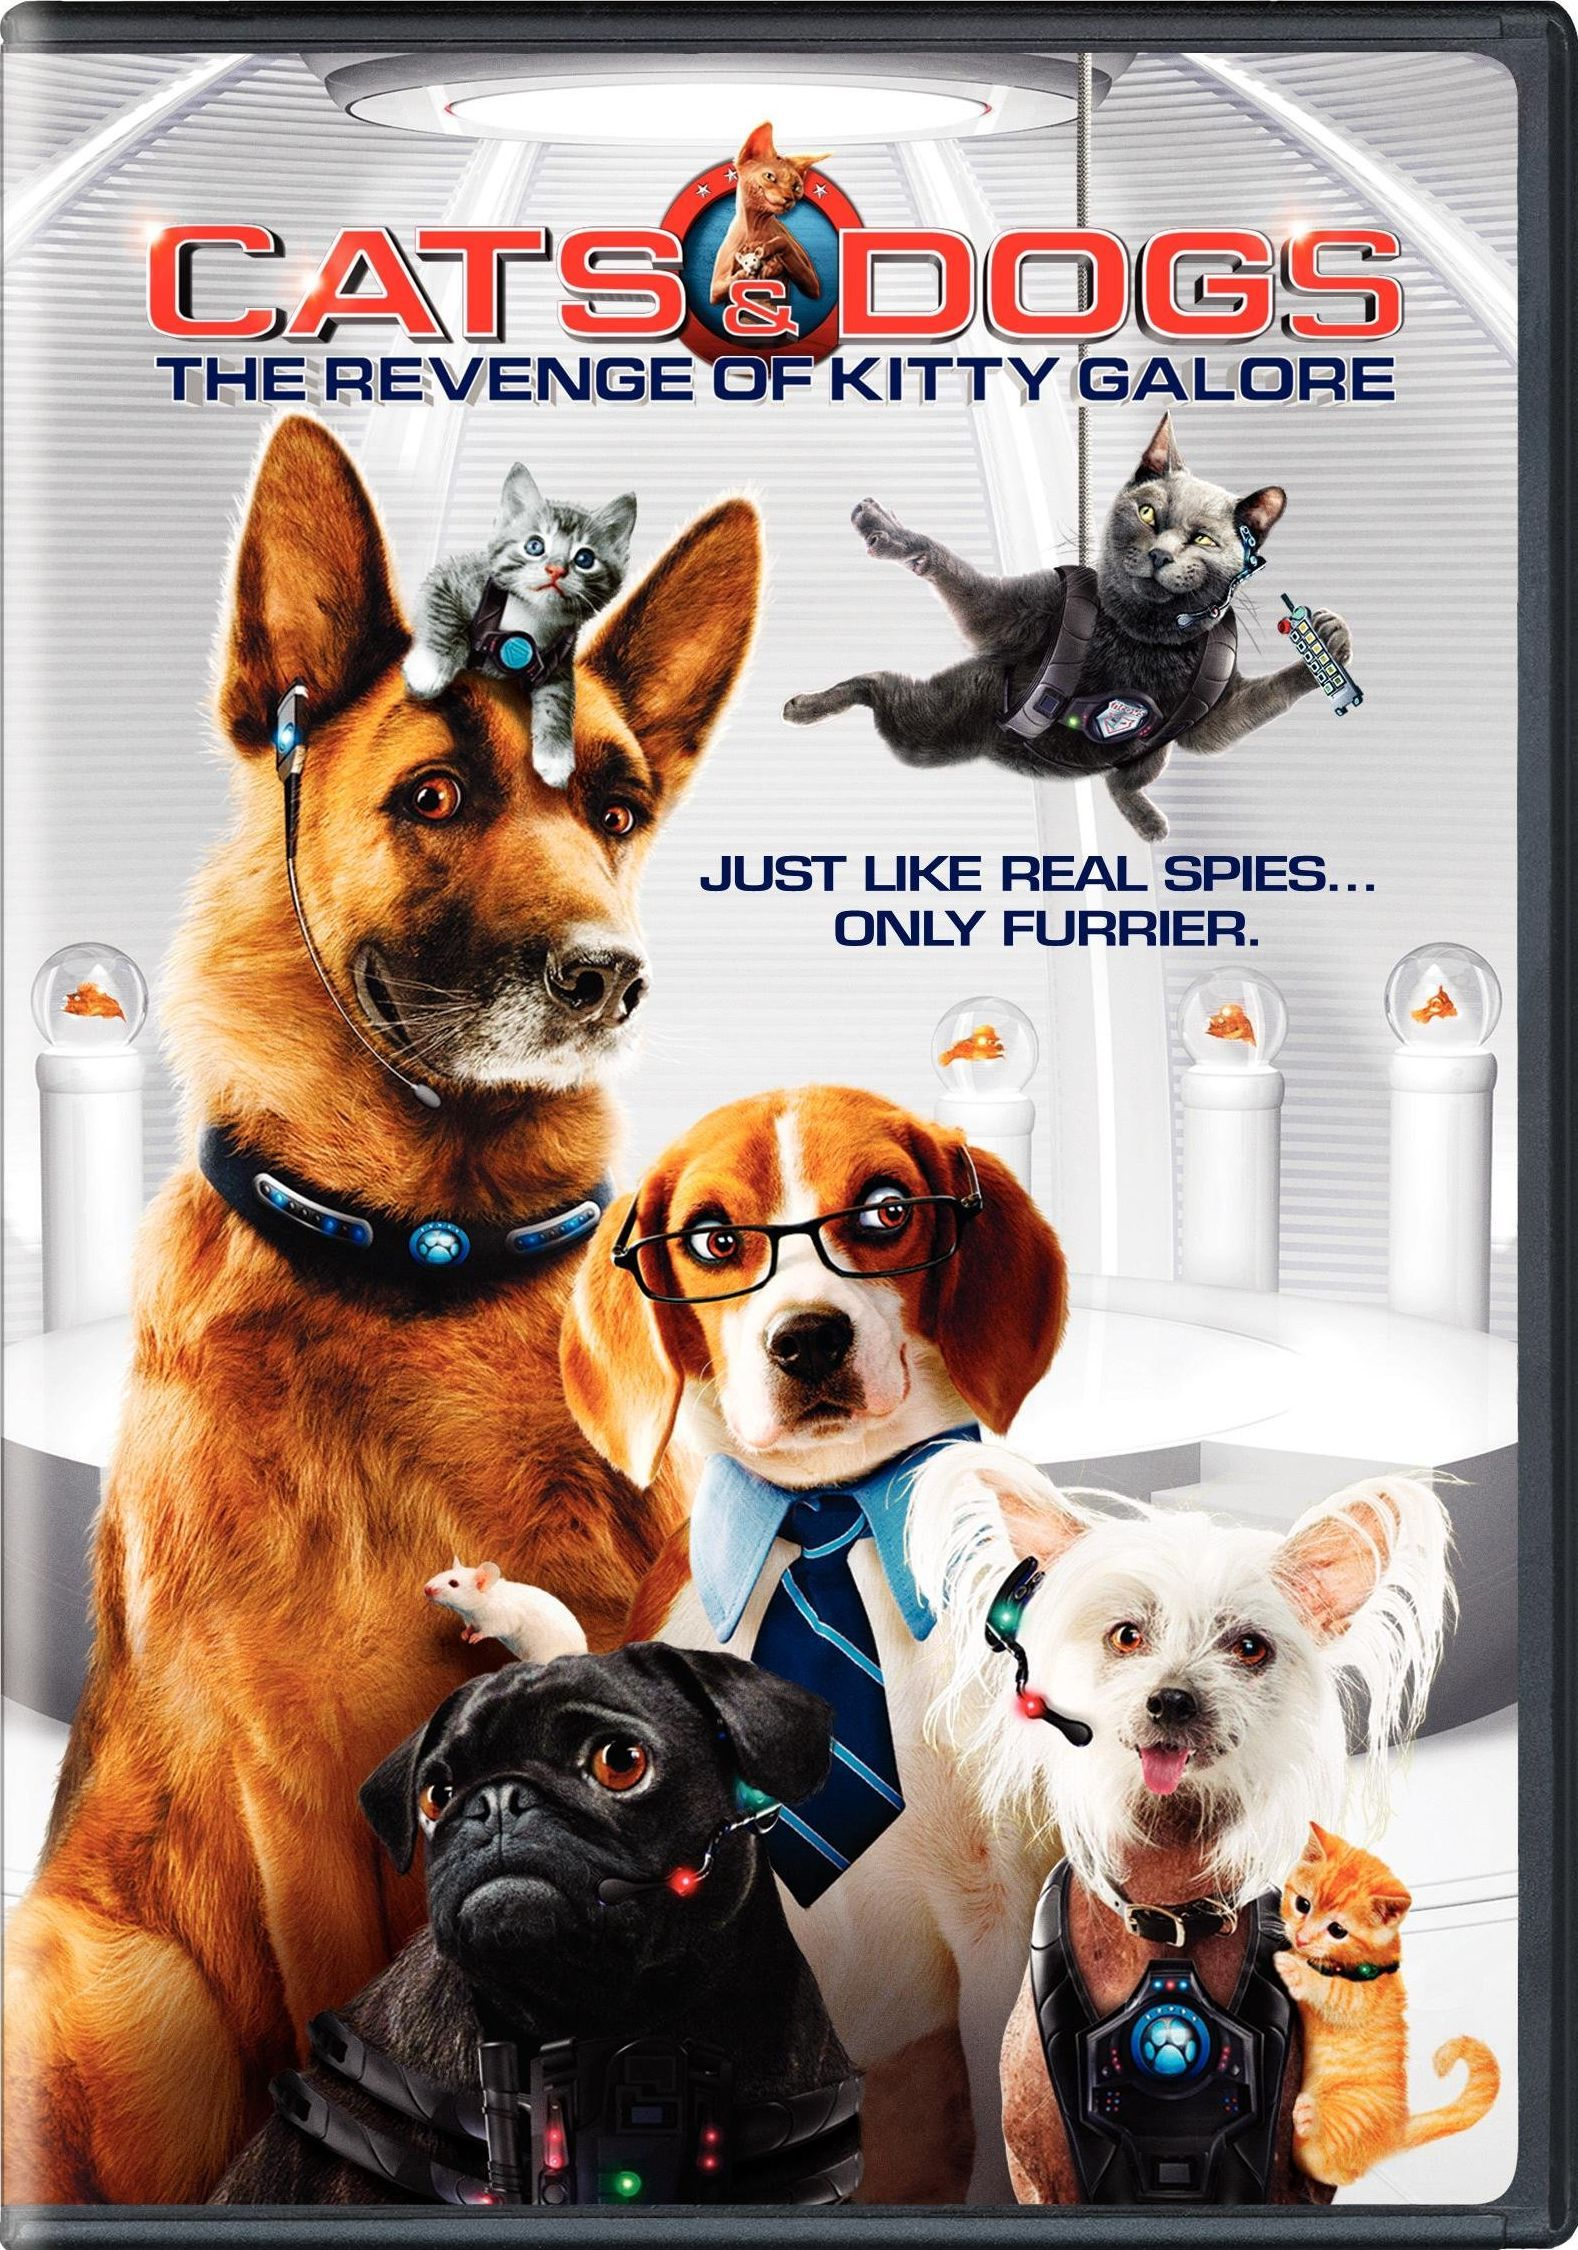 Read This Article To Get Answers To Your Questions About Dogs Dog Movies Dog Cat Dogs